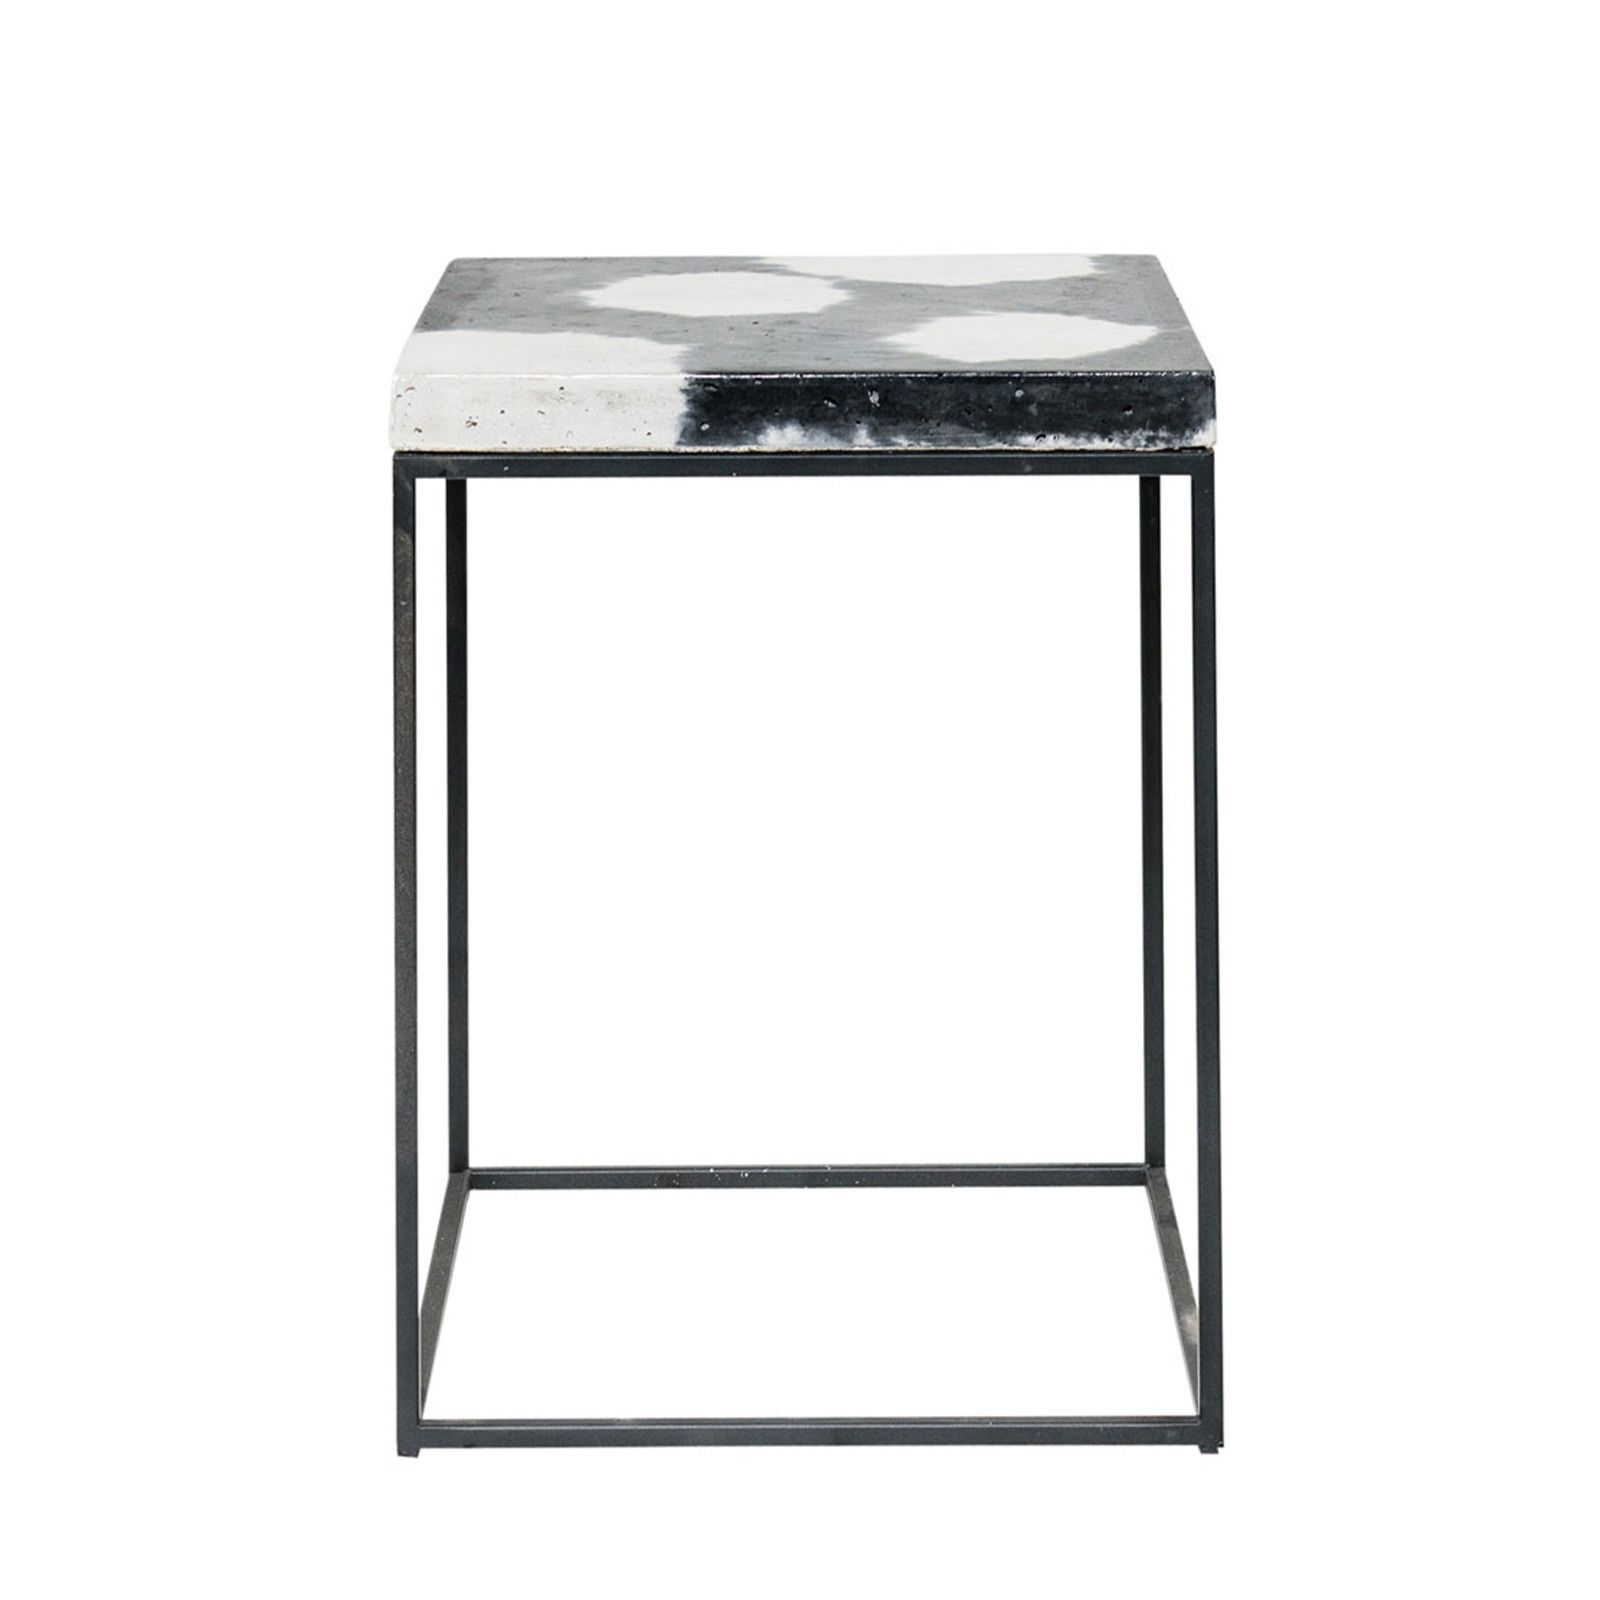 Oakland Holstein Side Table By Patrick Cain Designs